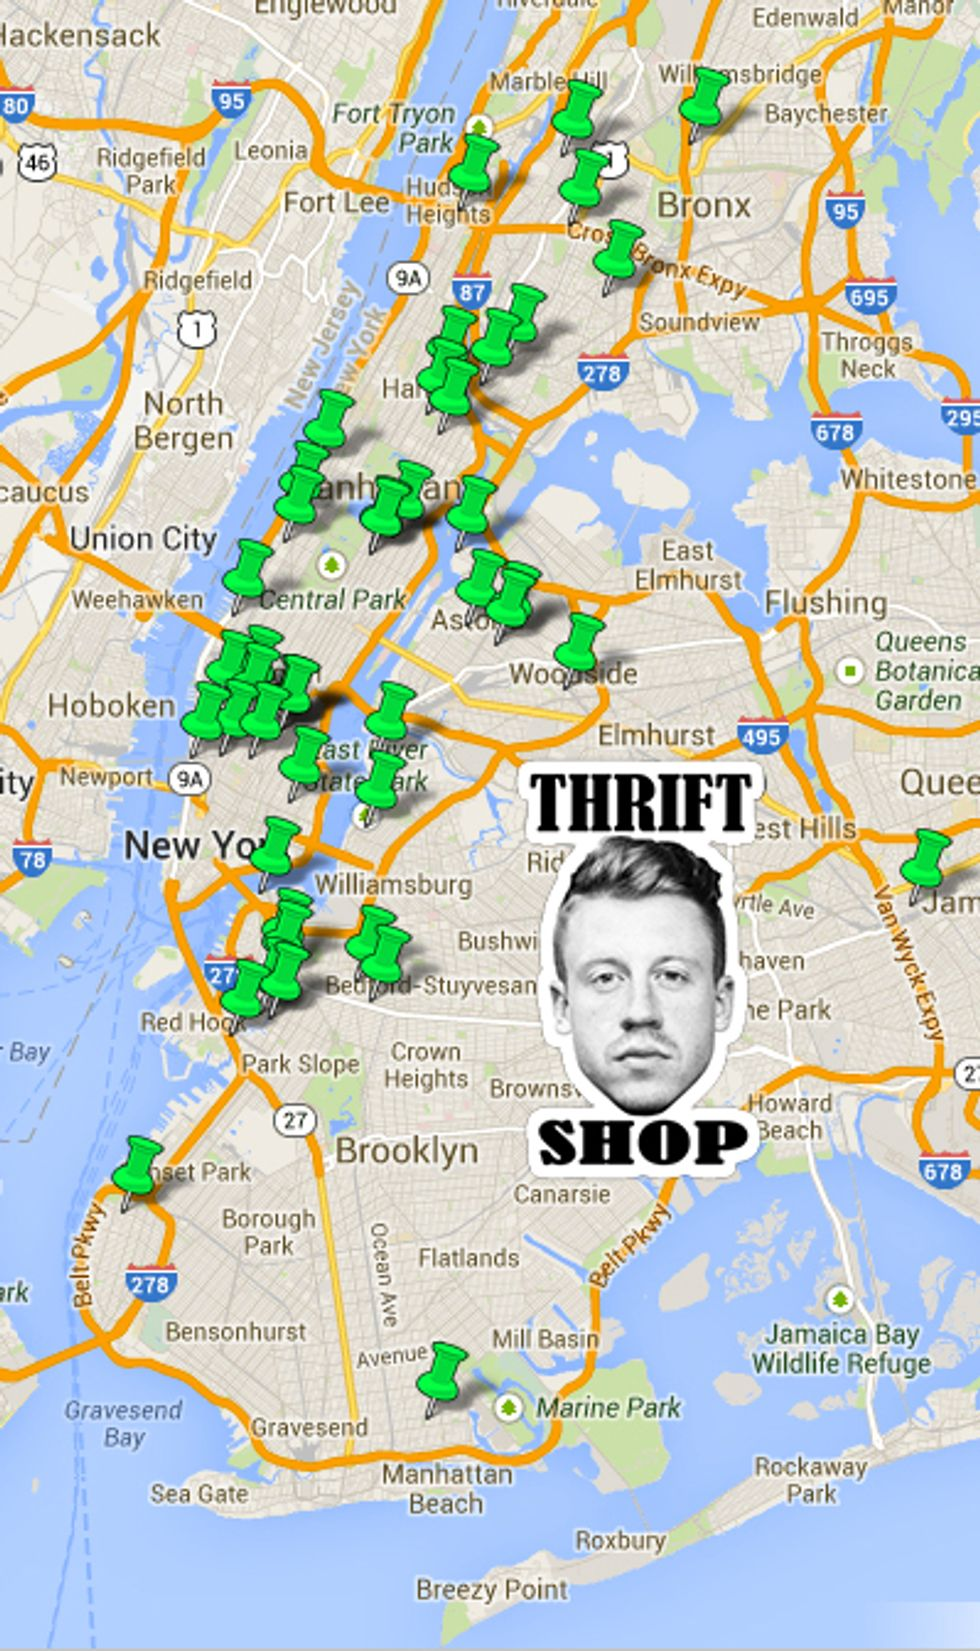 You Can Get Discounts at a Lot of NYC Thrift Stores This Saturday